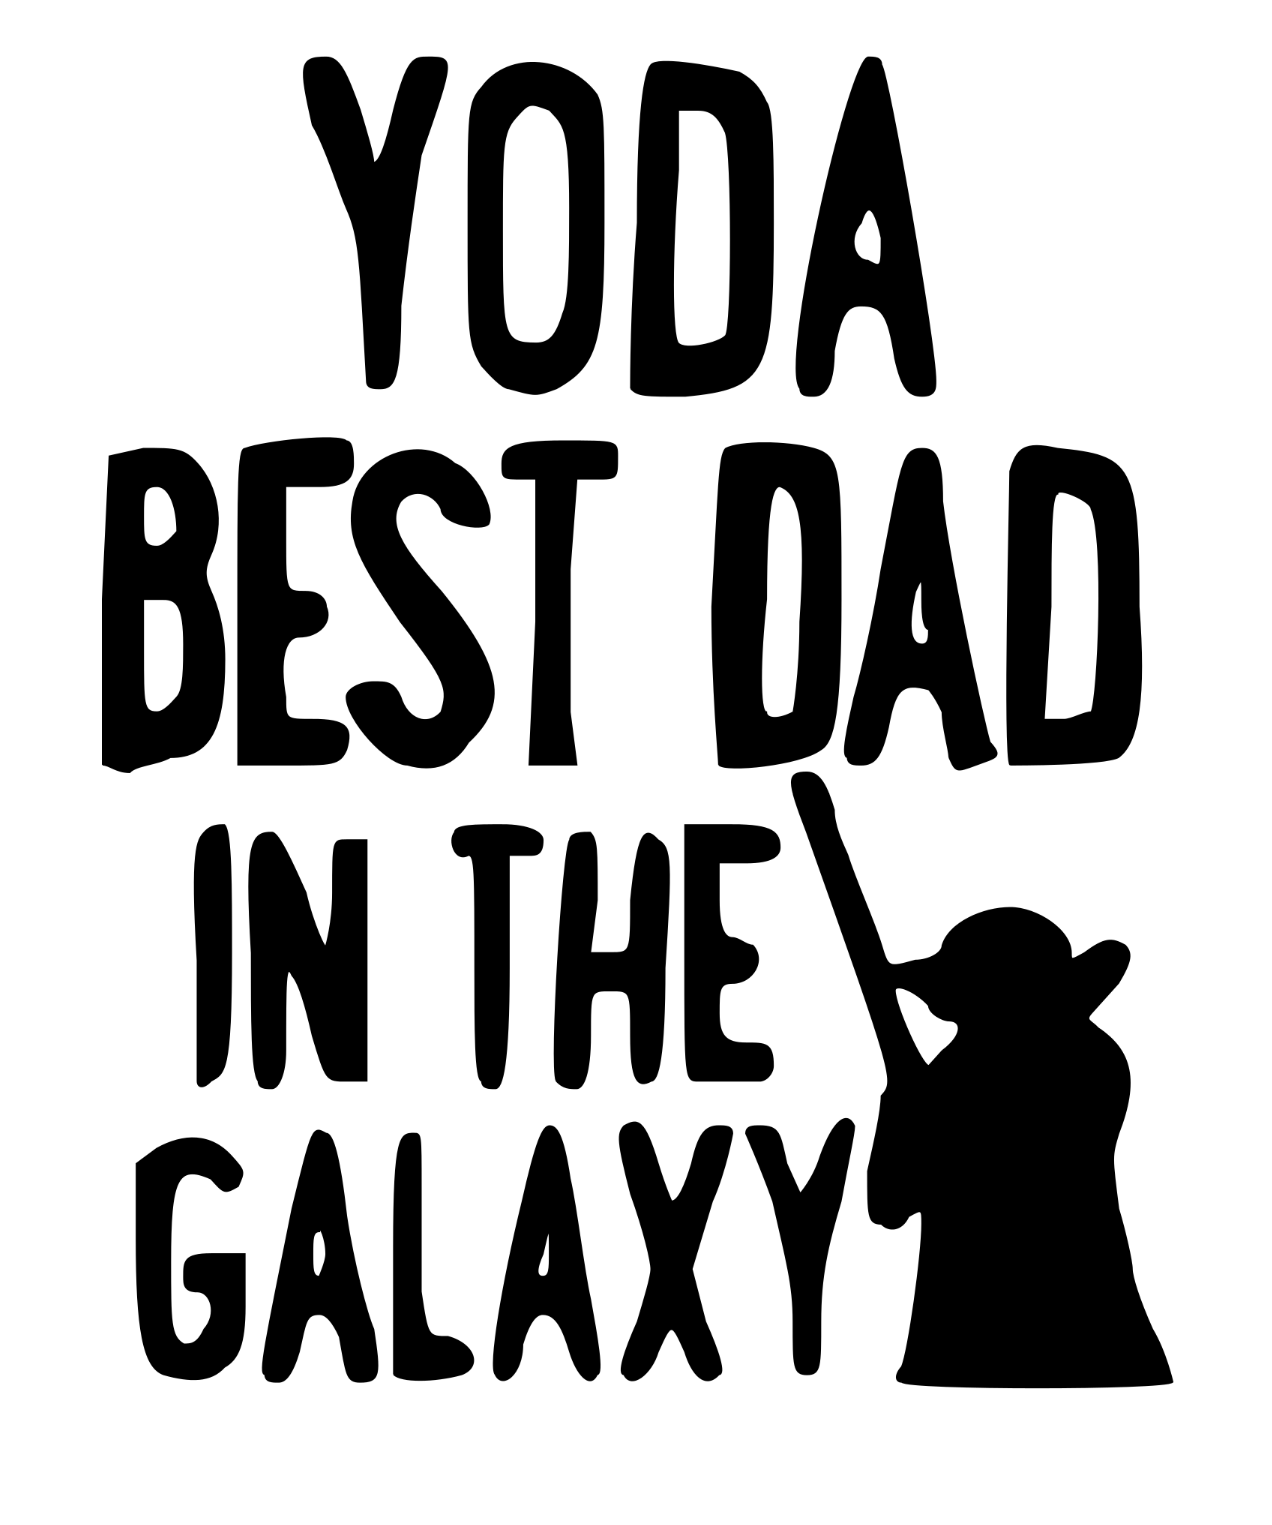 Yoda the best Dad